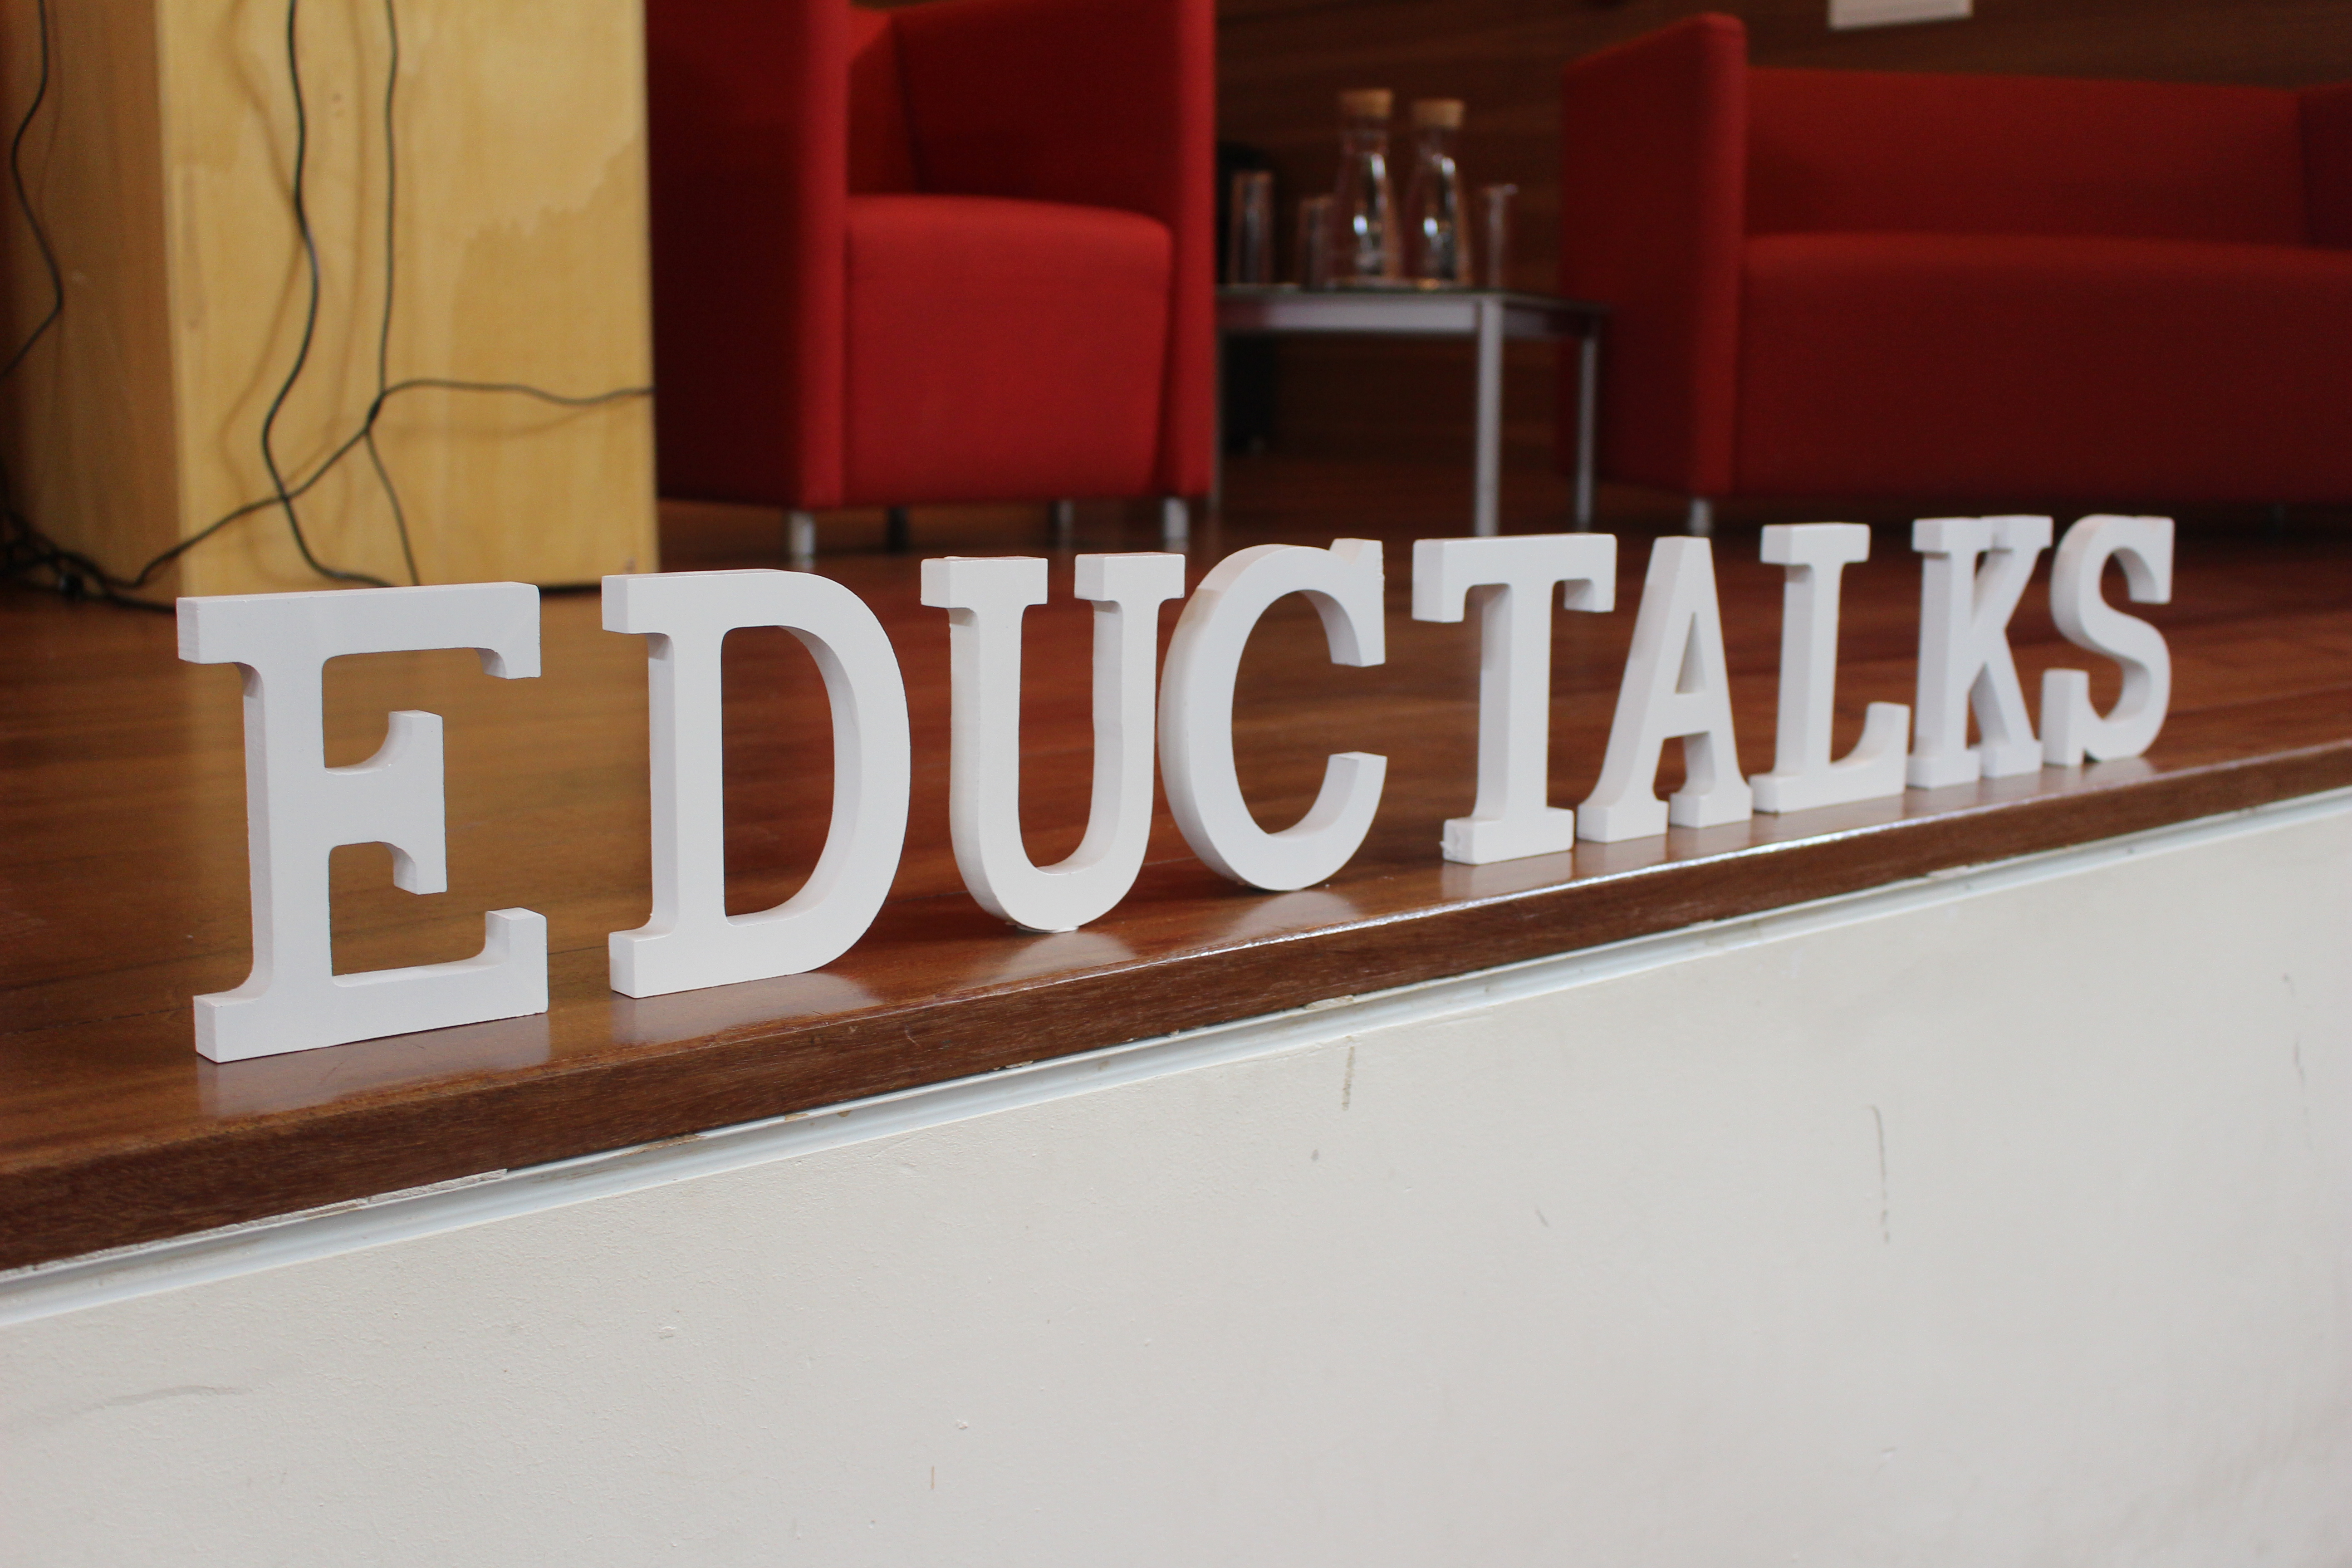 EDUCTALKS